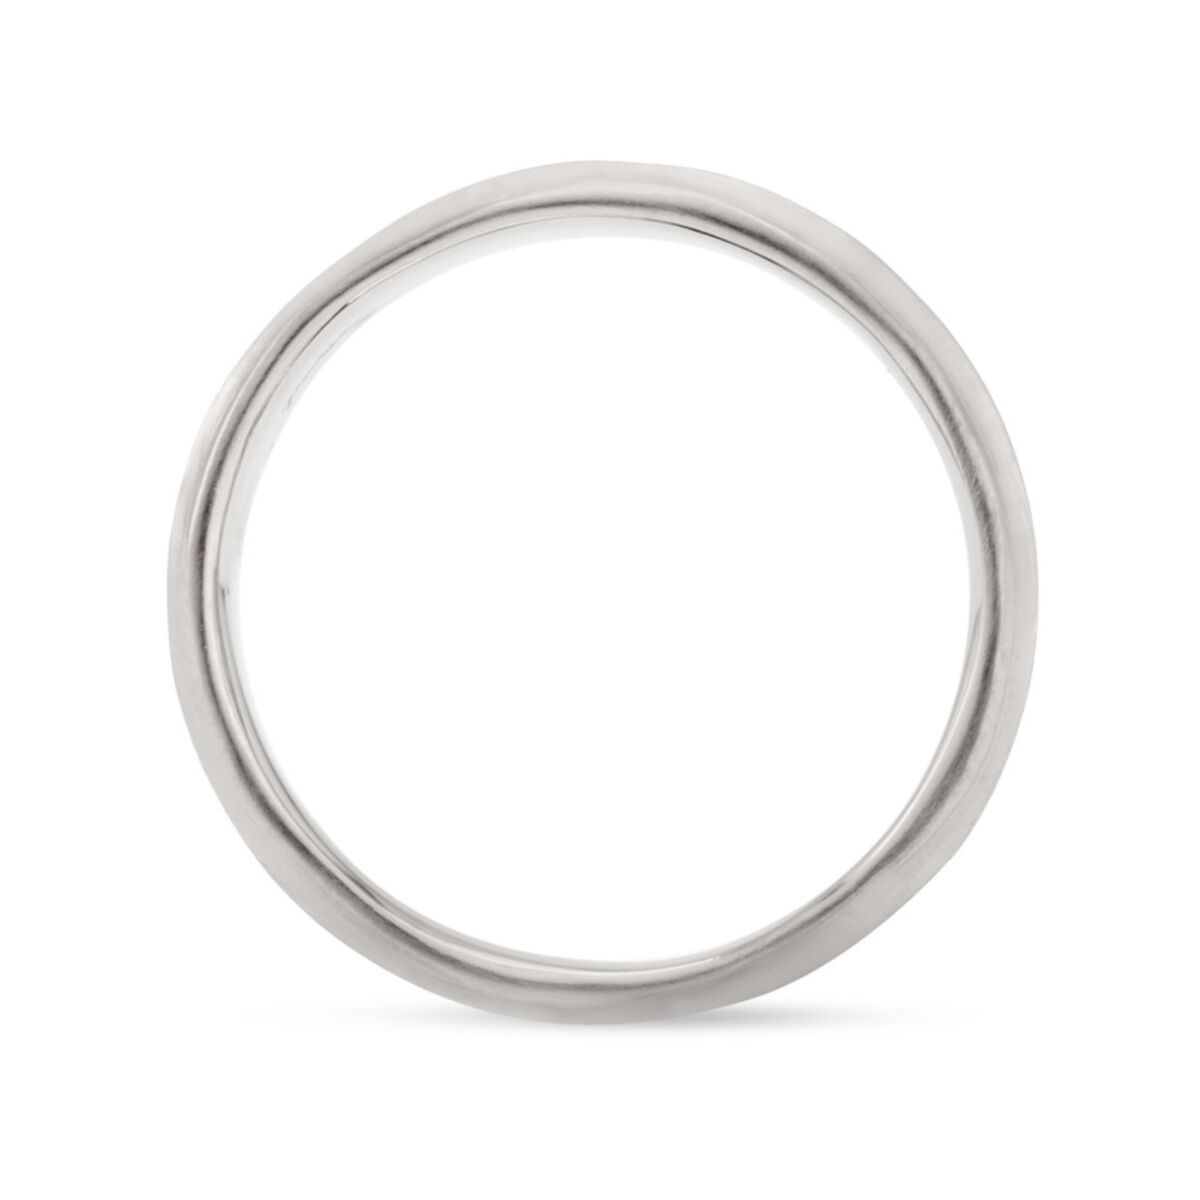 Line Ring image